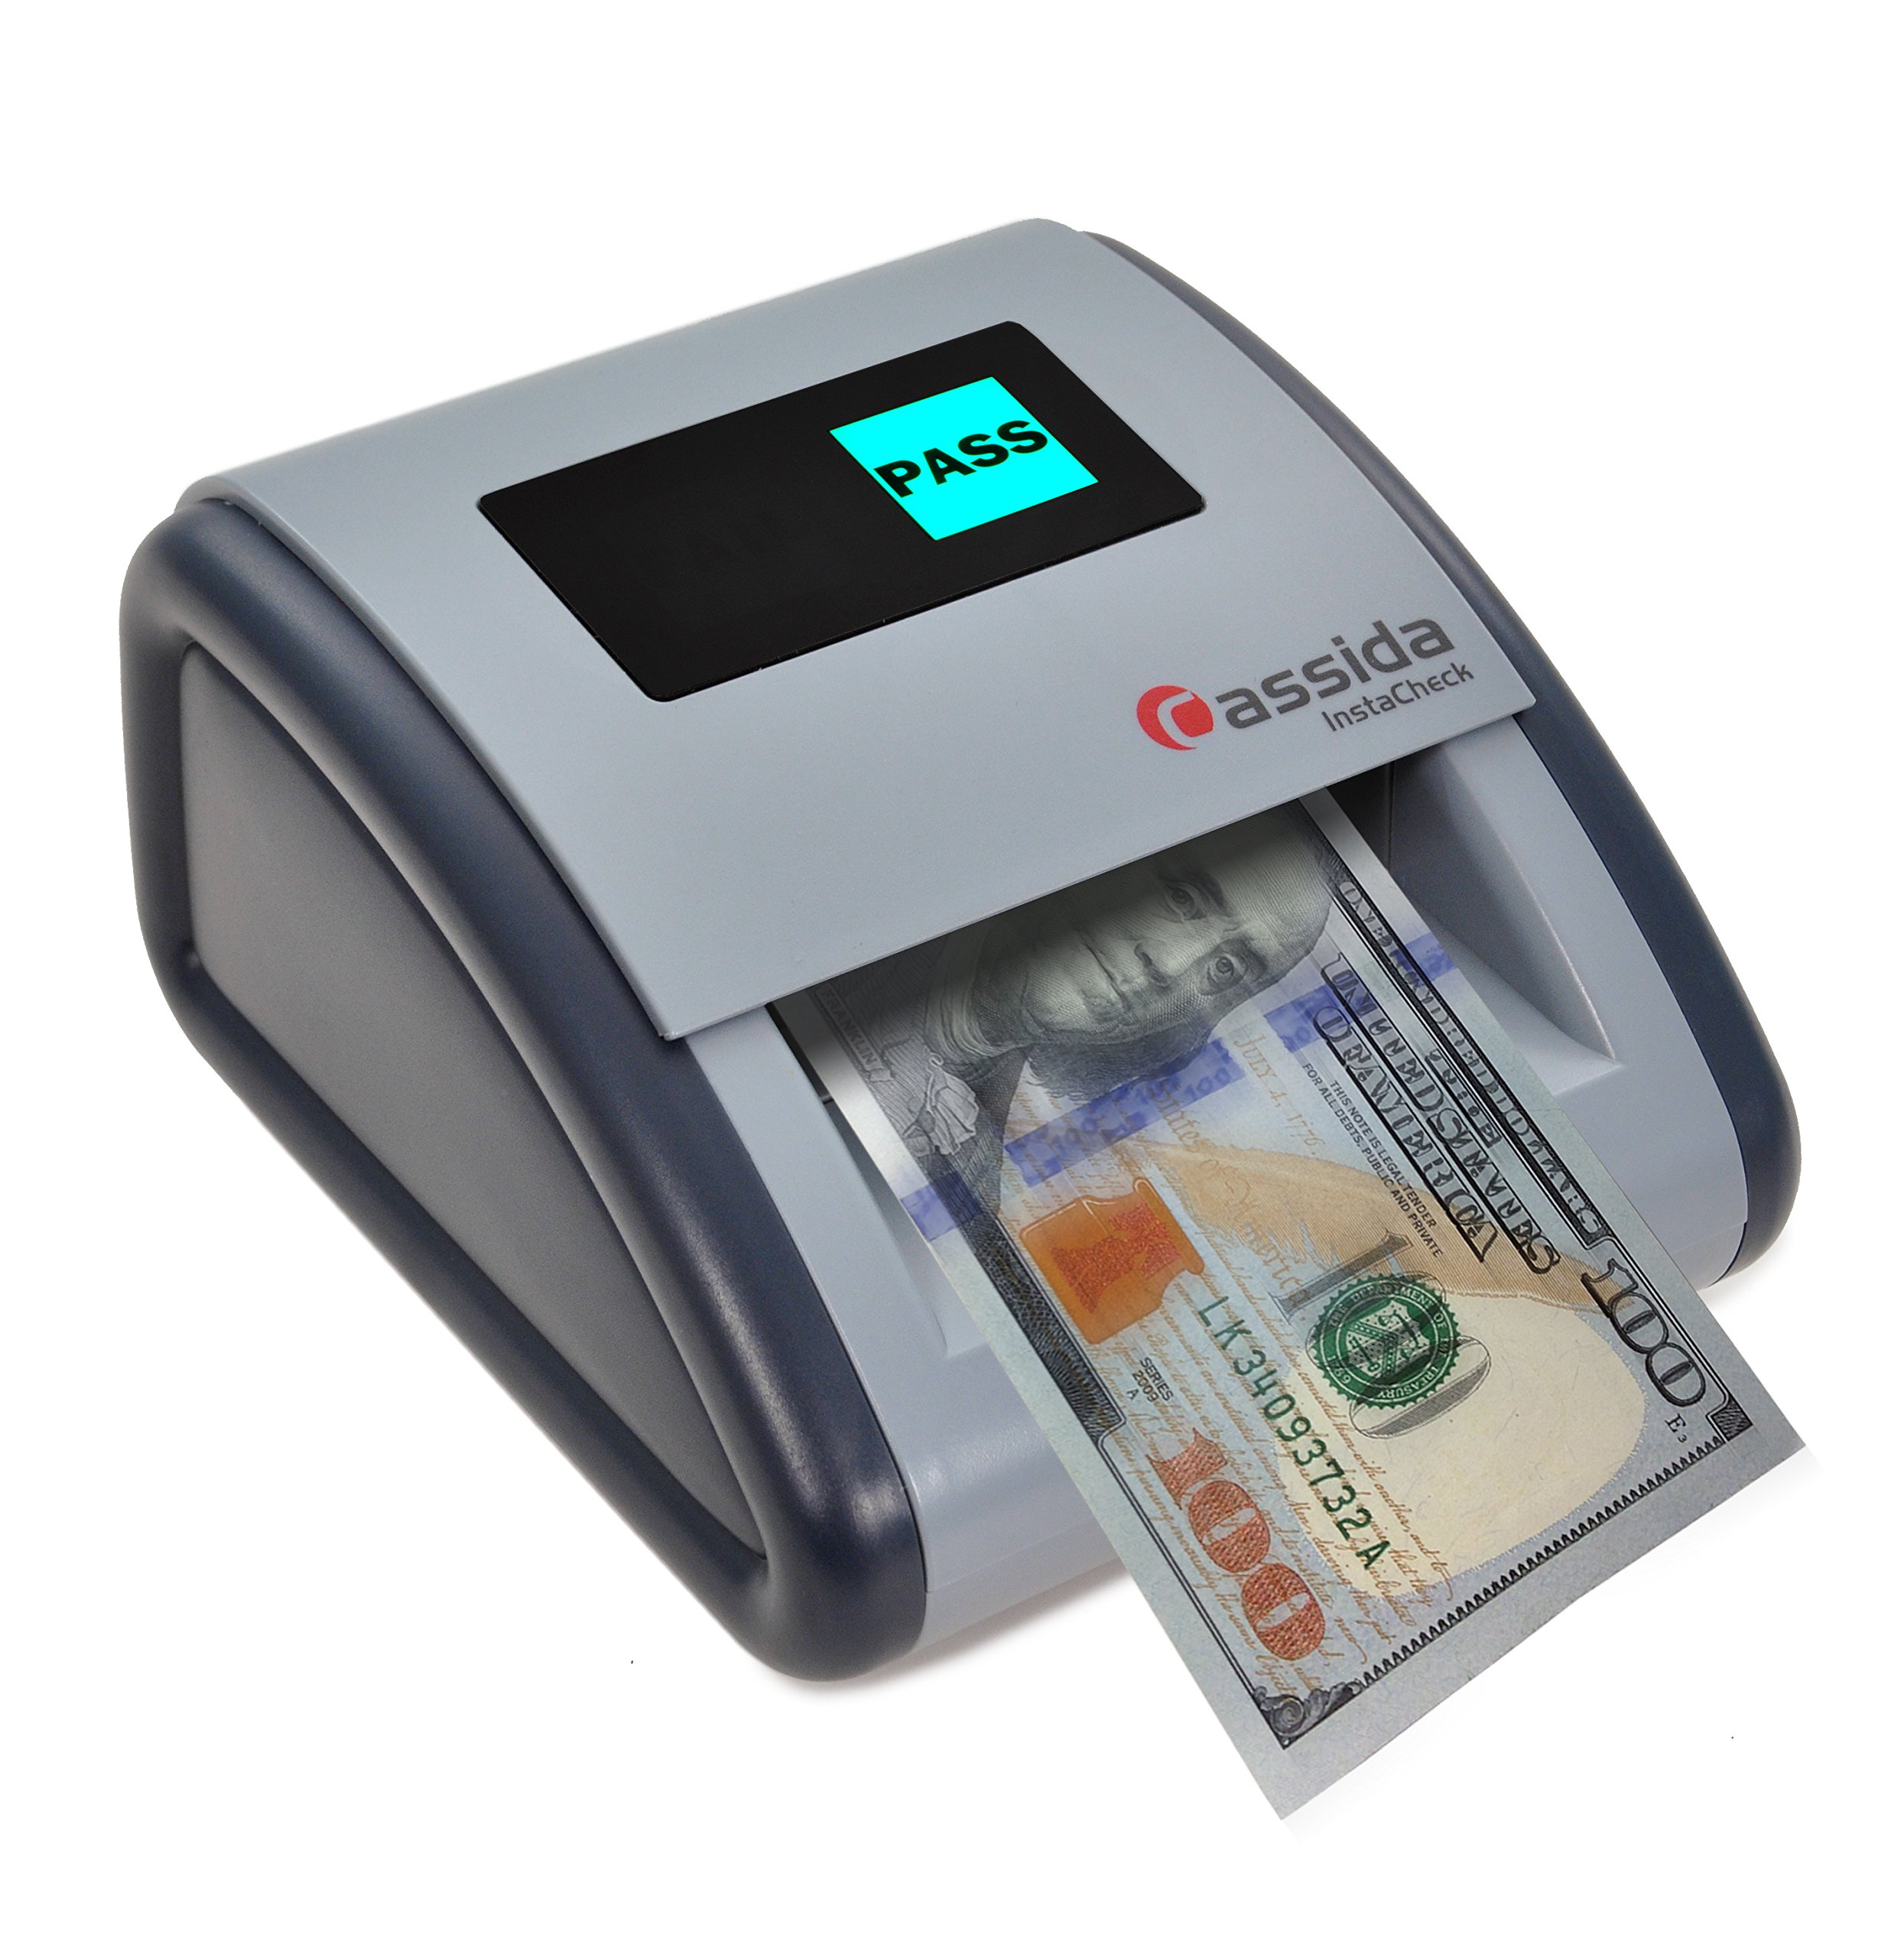 Cassida Small Footprint Easy Read Automatic Counterfeit Detector by Cassida